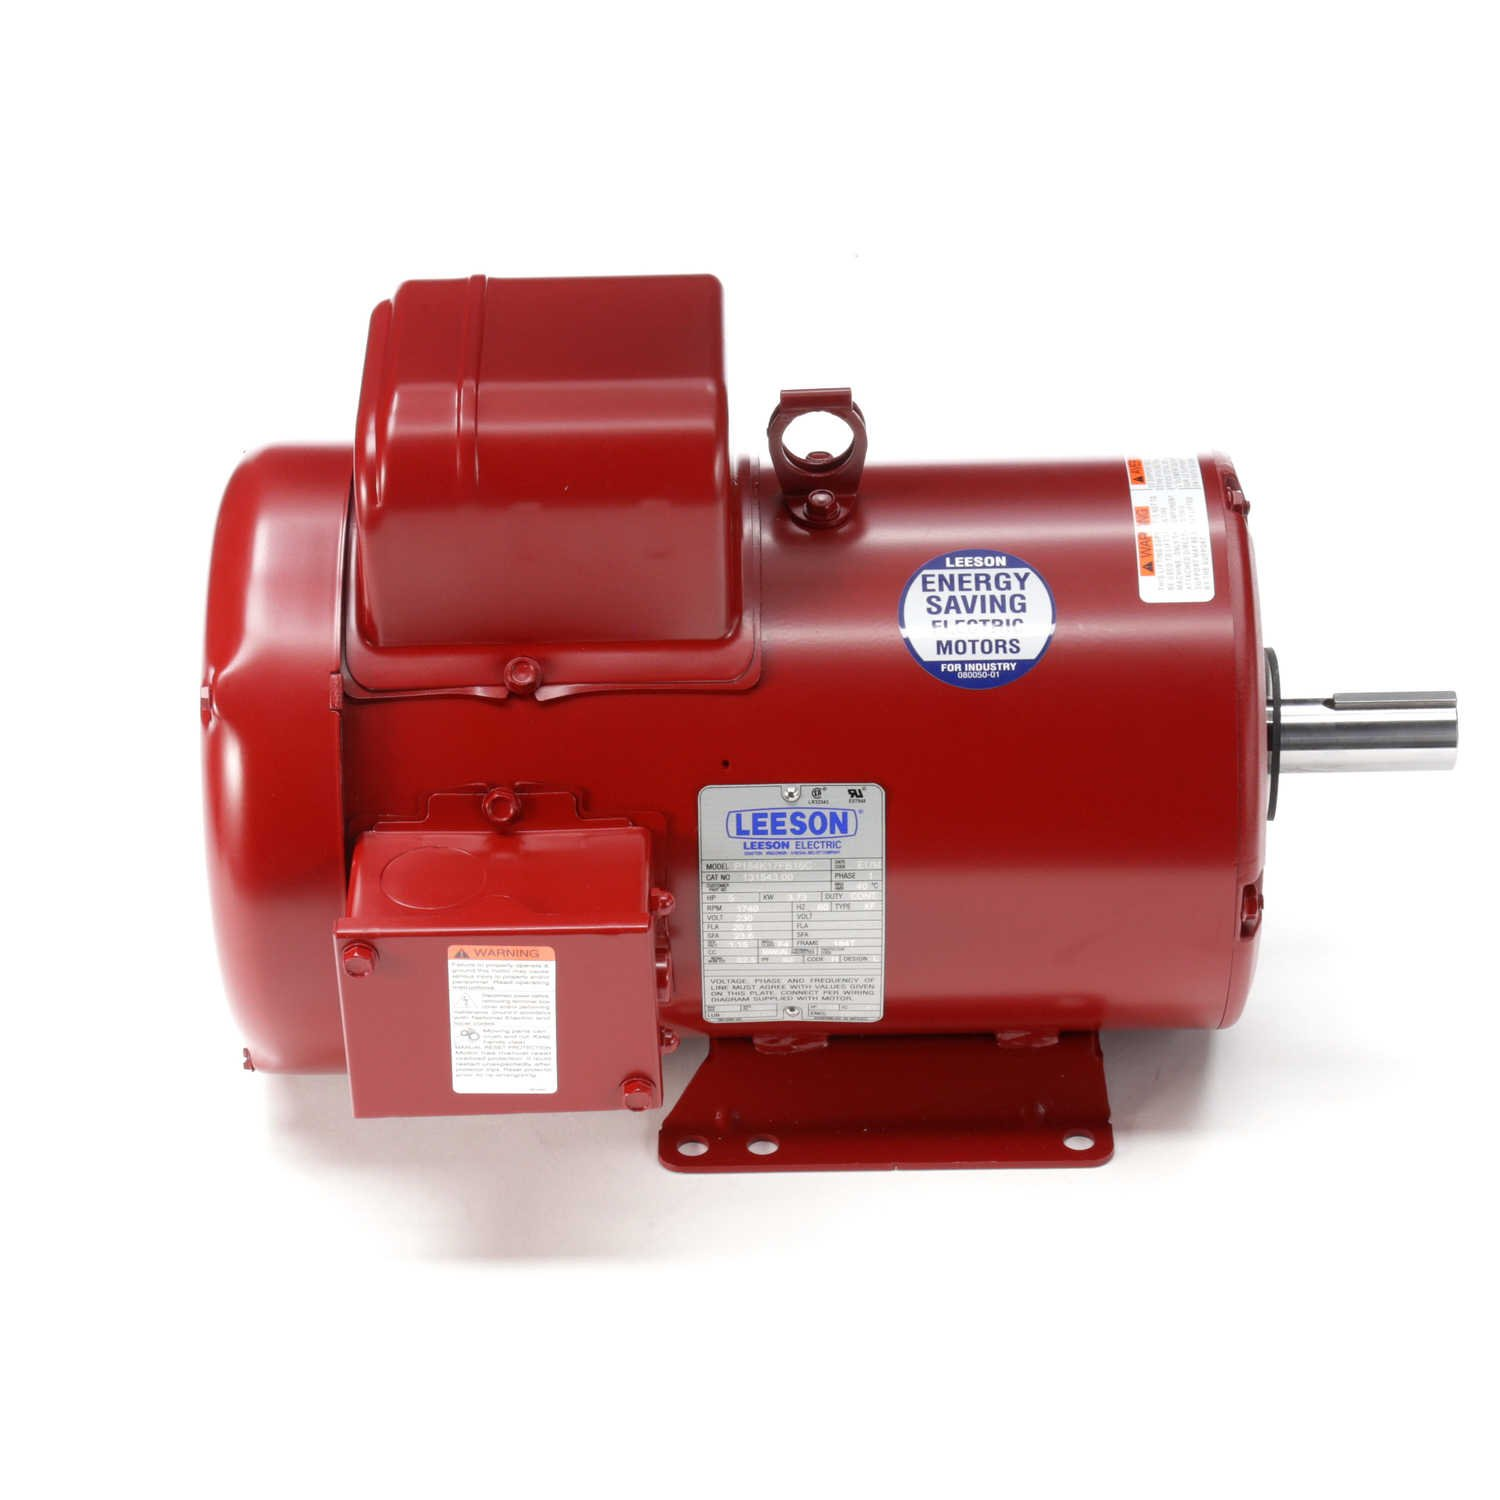 Leeson Farm-Duty Electric Motor - 5.0 HP, 1,740 RPM, 230 Volts, Single Phase, Model Number P184K17FB16